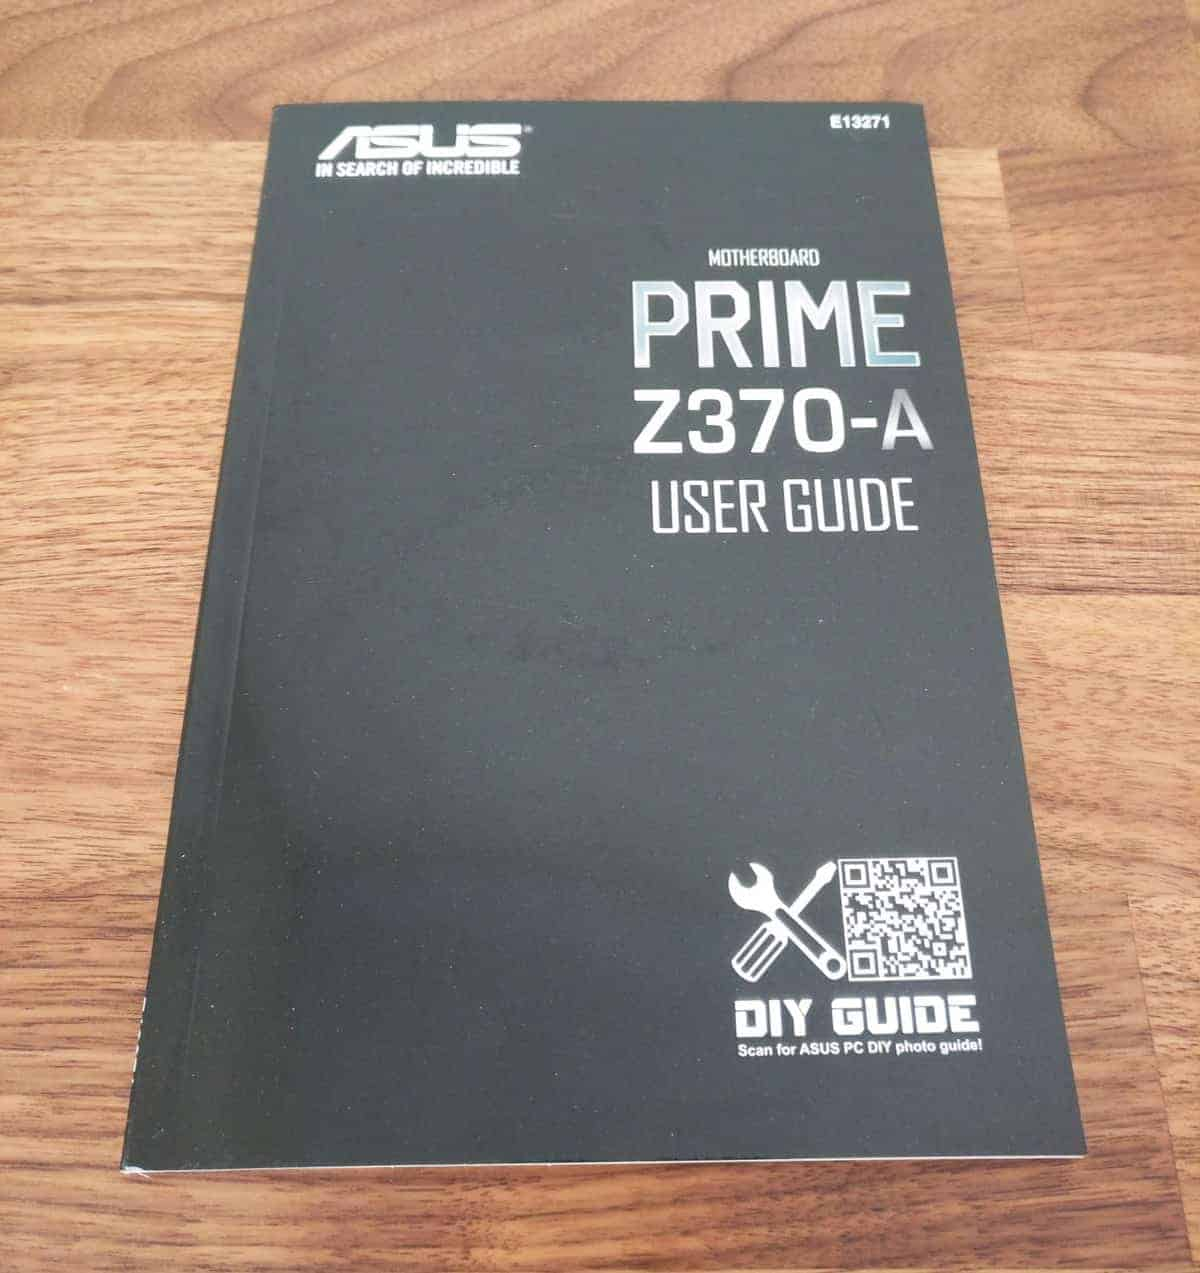 asus-prime-photos34 ASUS Prime Z370-A Motherboard Review